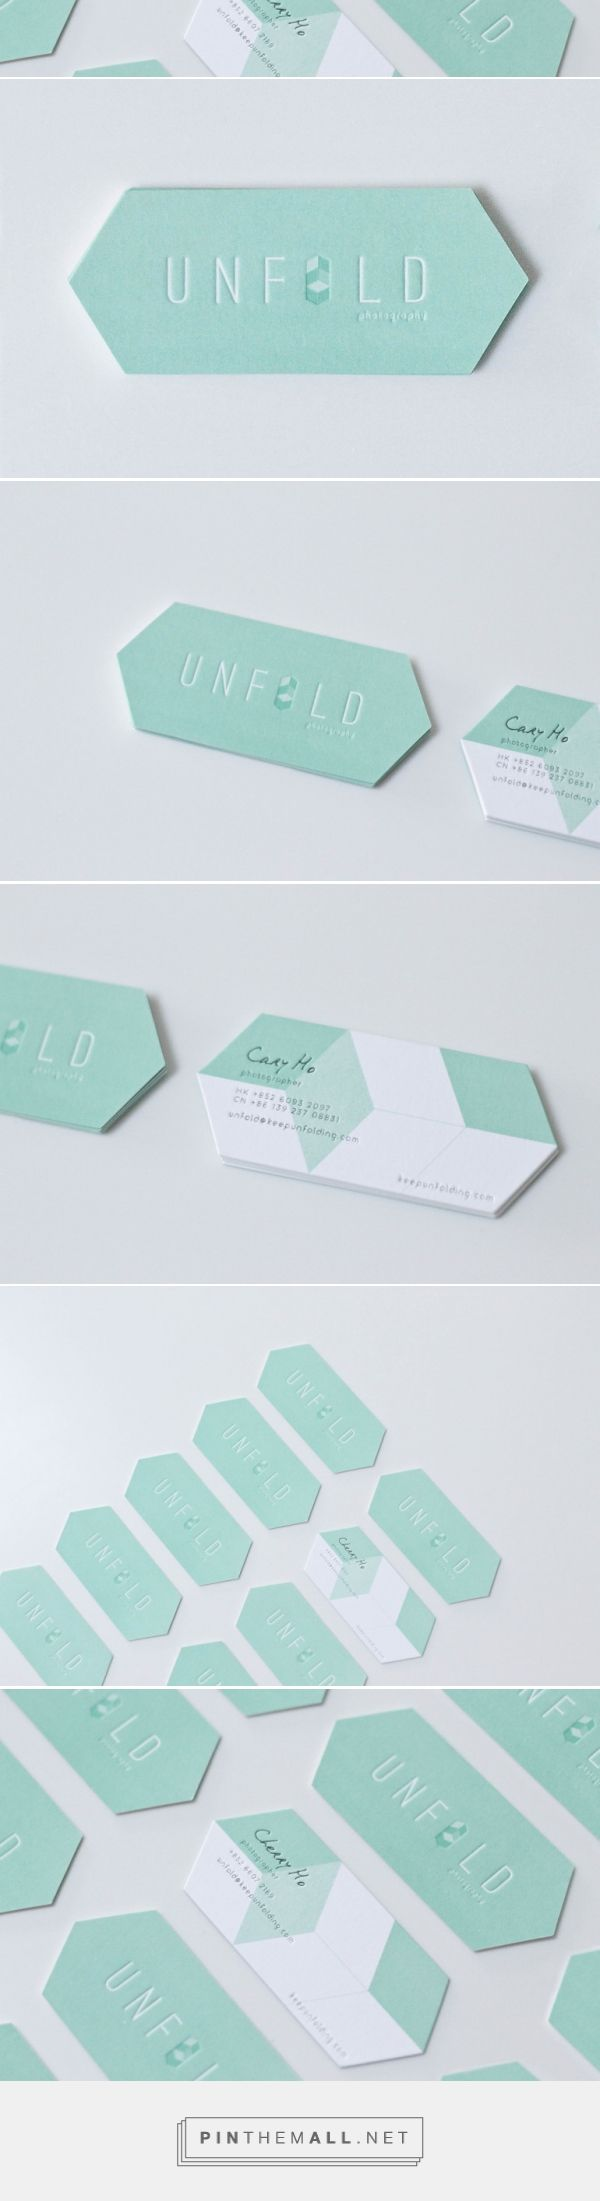 113 Best Business Card Love Images On Pinterest Business Card